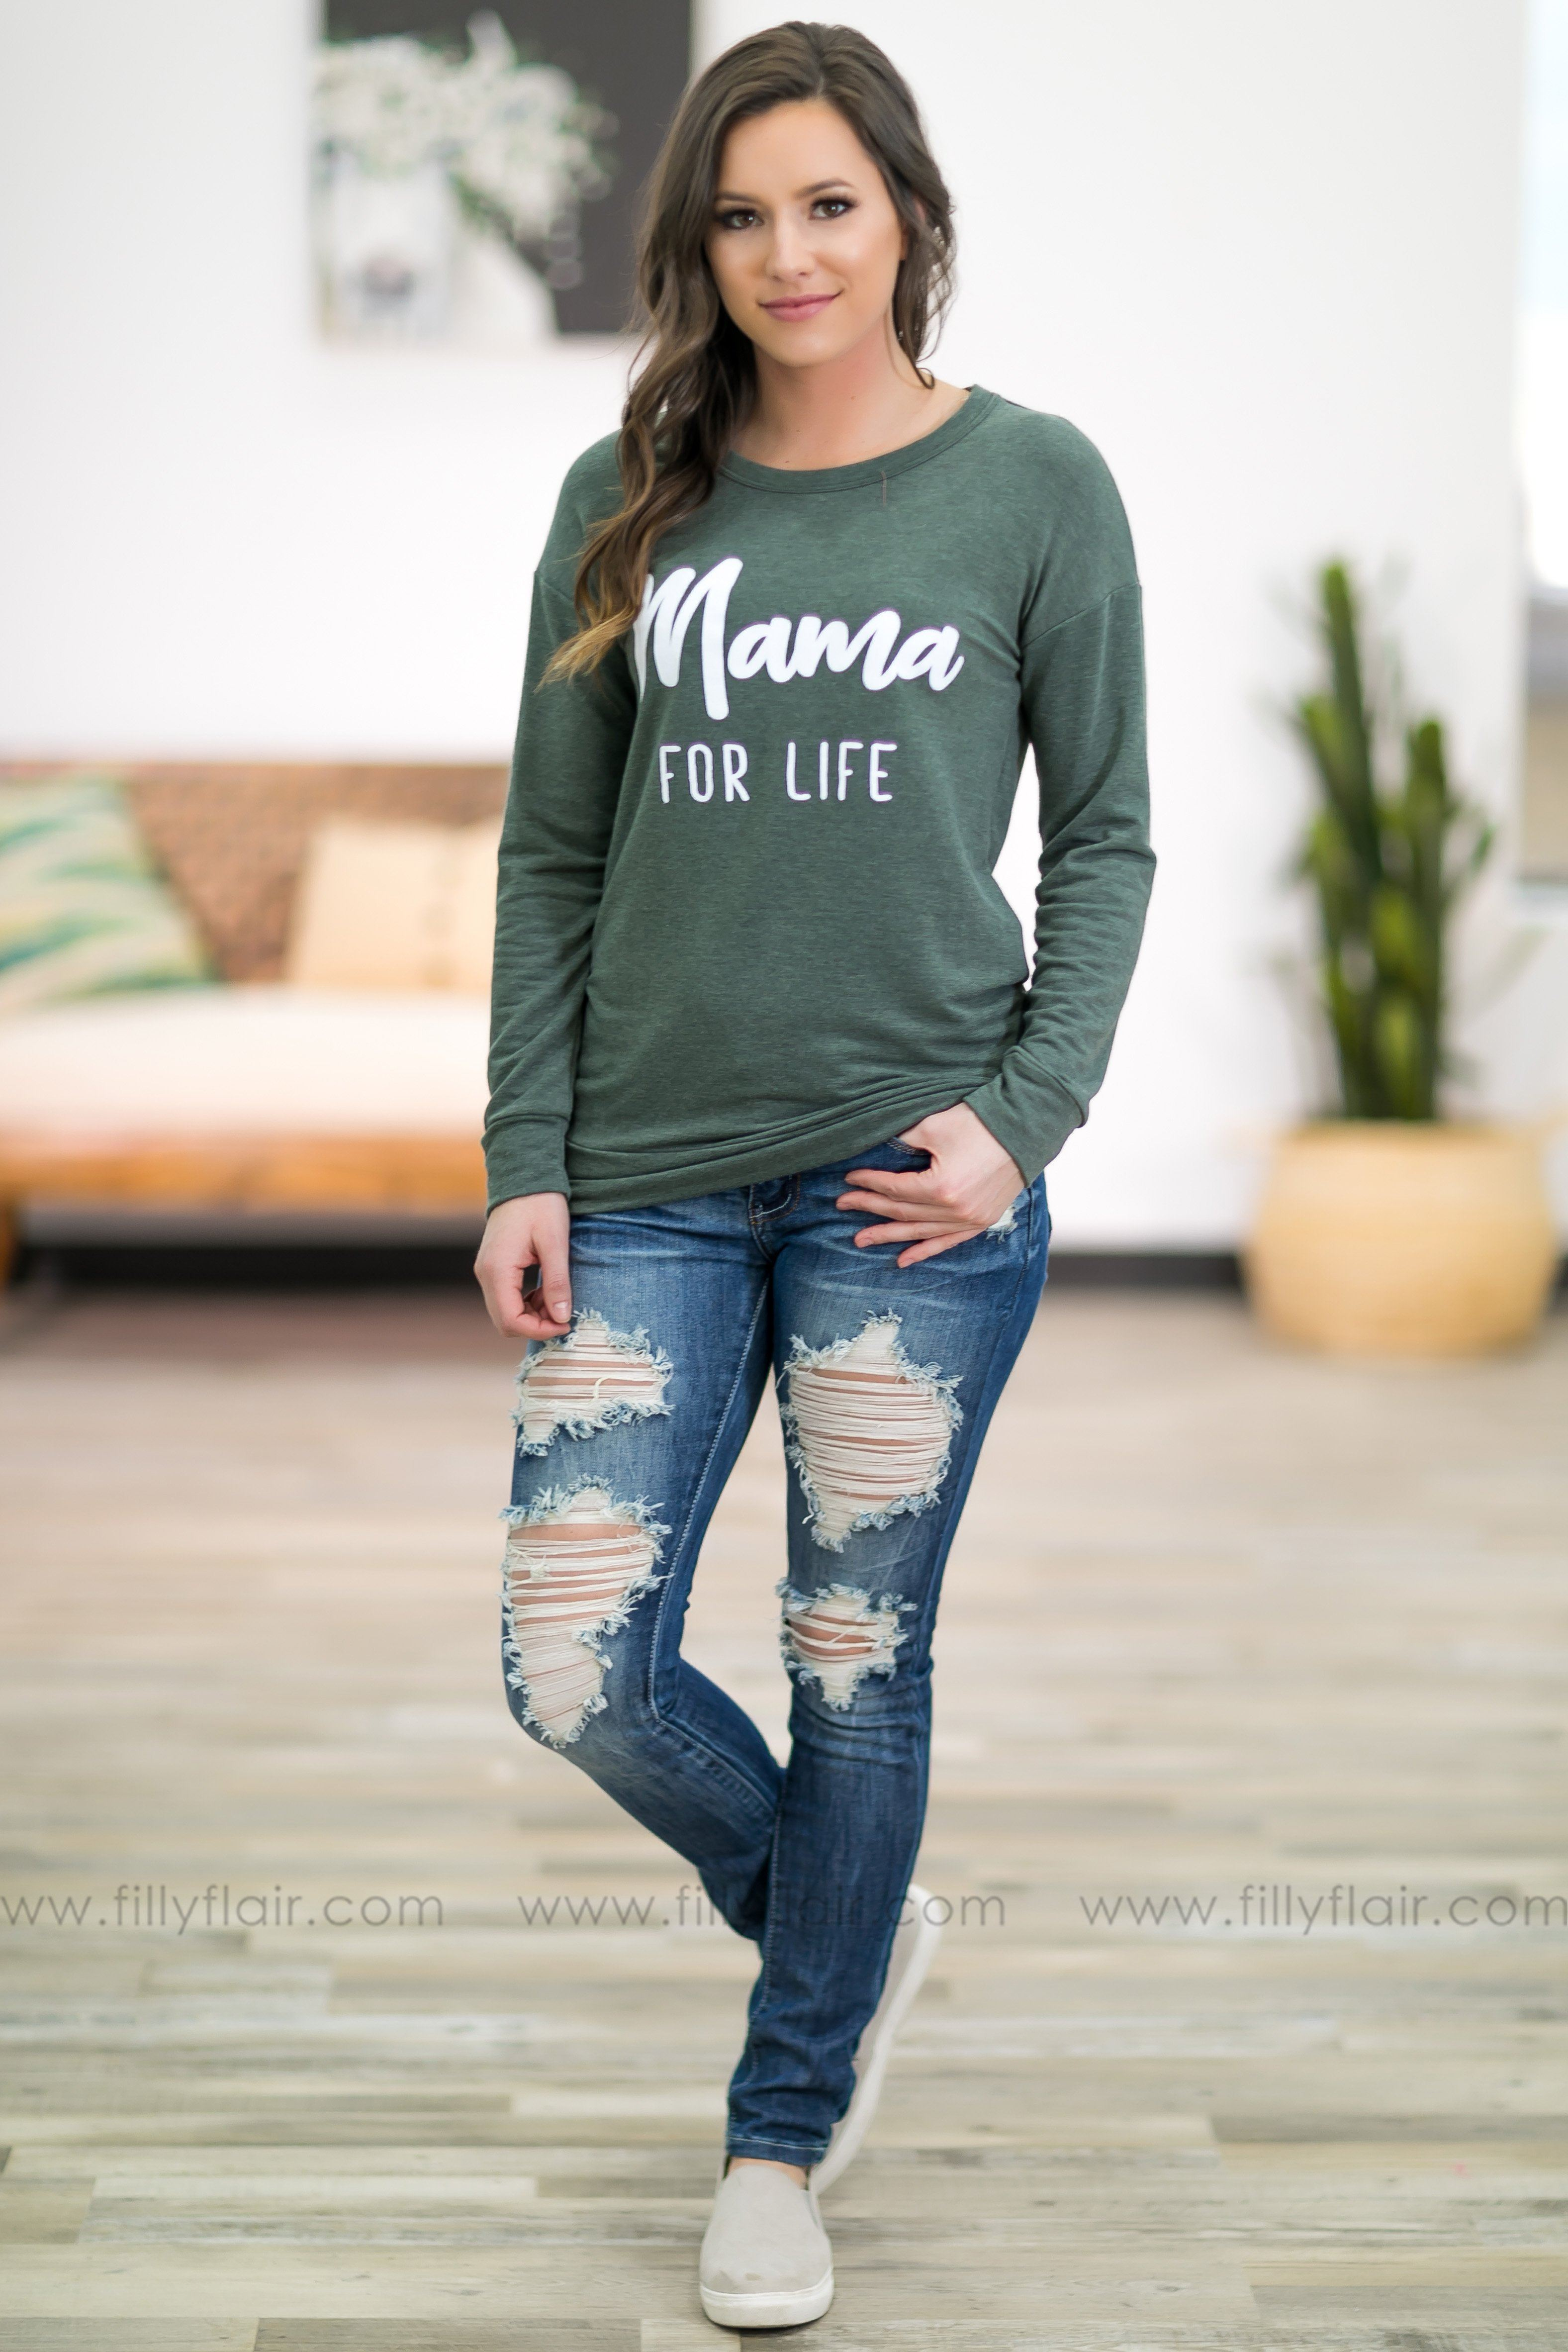 'Mama For Life' Long Sleeve Top in Olive - Filly Flair